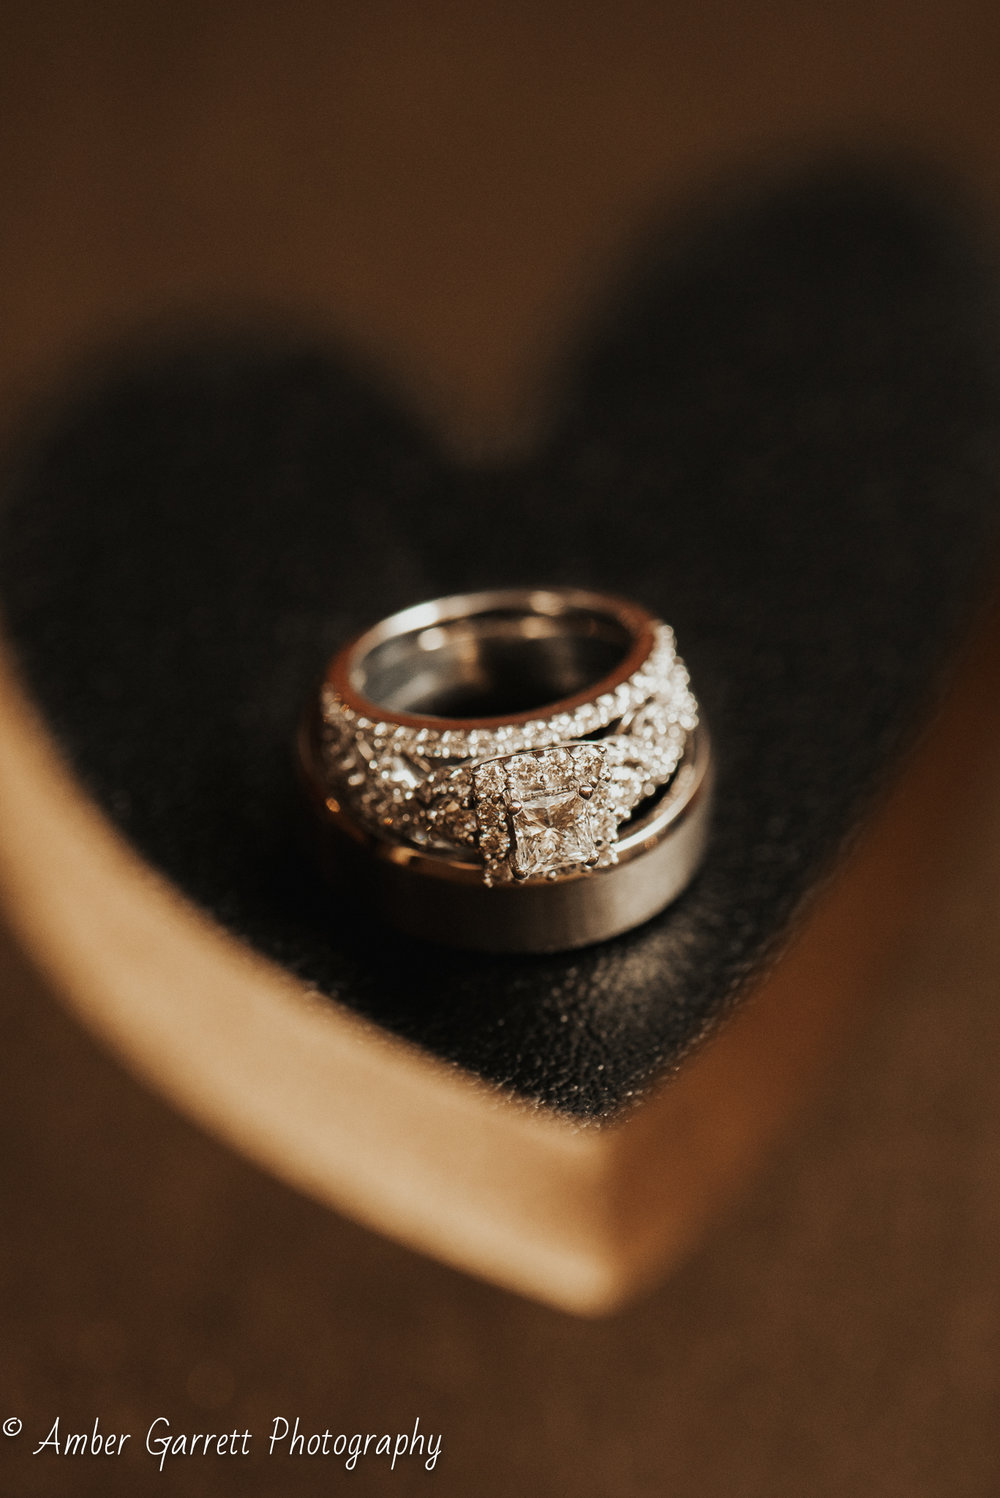 It's clear Samuel put a lot of effort into picking the perfect ring for his bride. -